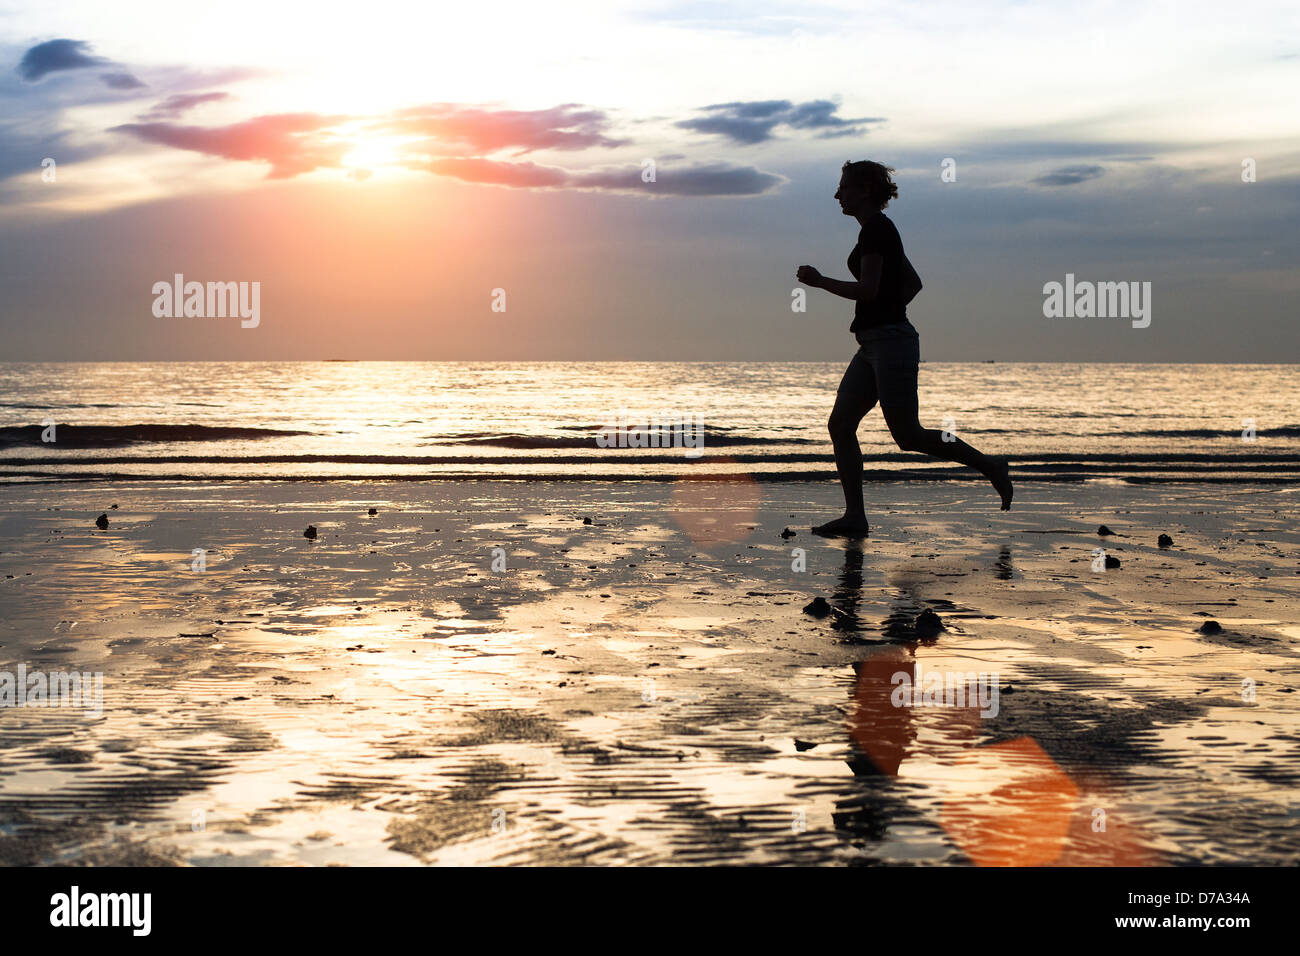 Silhouette of a young woman jogger at sunset on seashore. - Stock Image